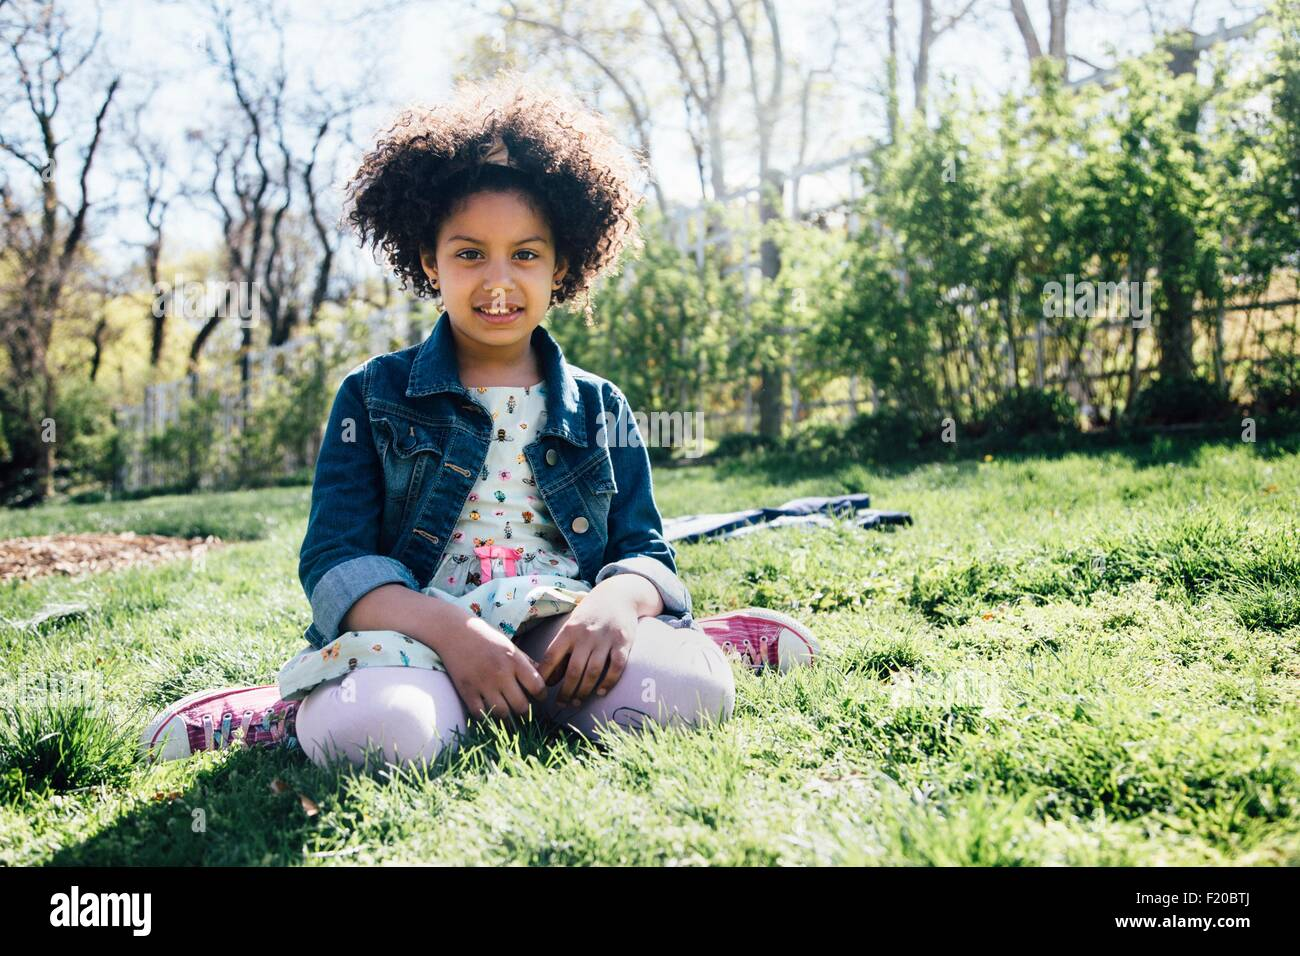 Front view of girl sitting on grass, looking at camera - Stock Image